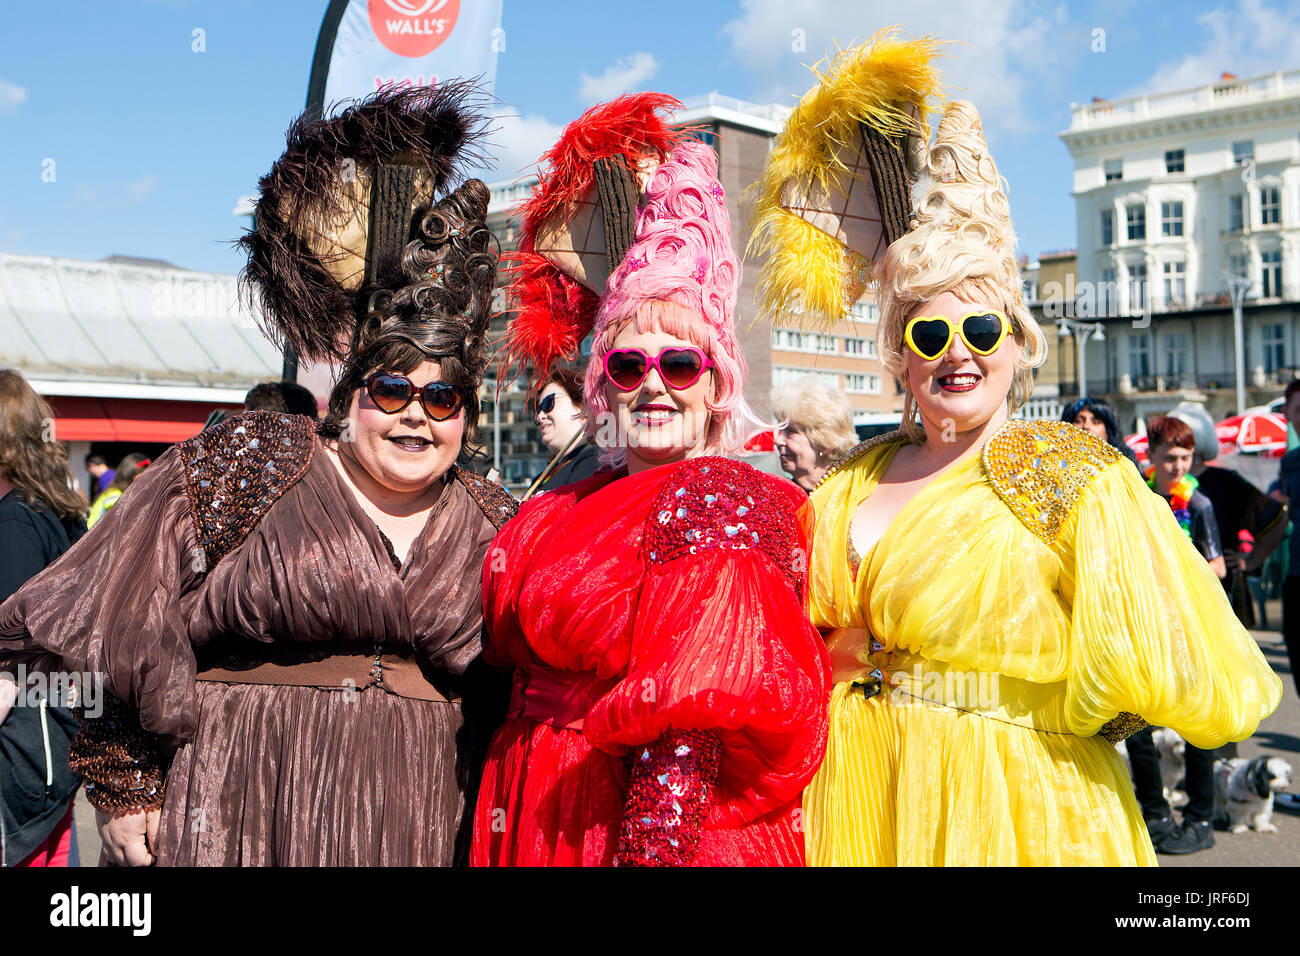 This is the Brighton Pride 2017 Parade. A carnival atmosphere promoting rights for the LGBTQ  community. The parade proceeded along the seafront of Brighton & Hove commencing at 11:00 am from Hove Lawns along the seafront and through Brighton city centre. 5th August 2017. - Stock Image